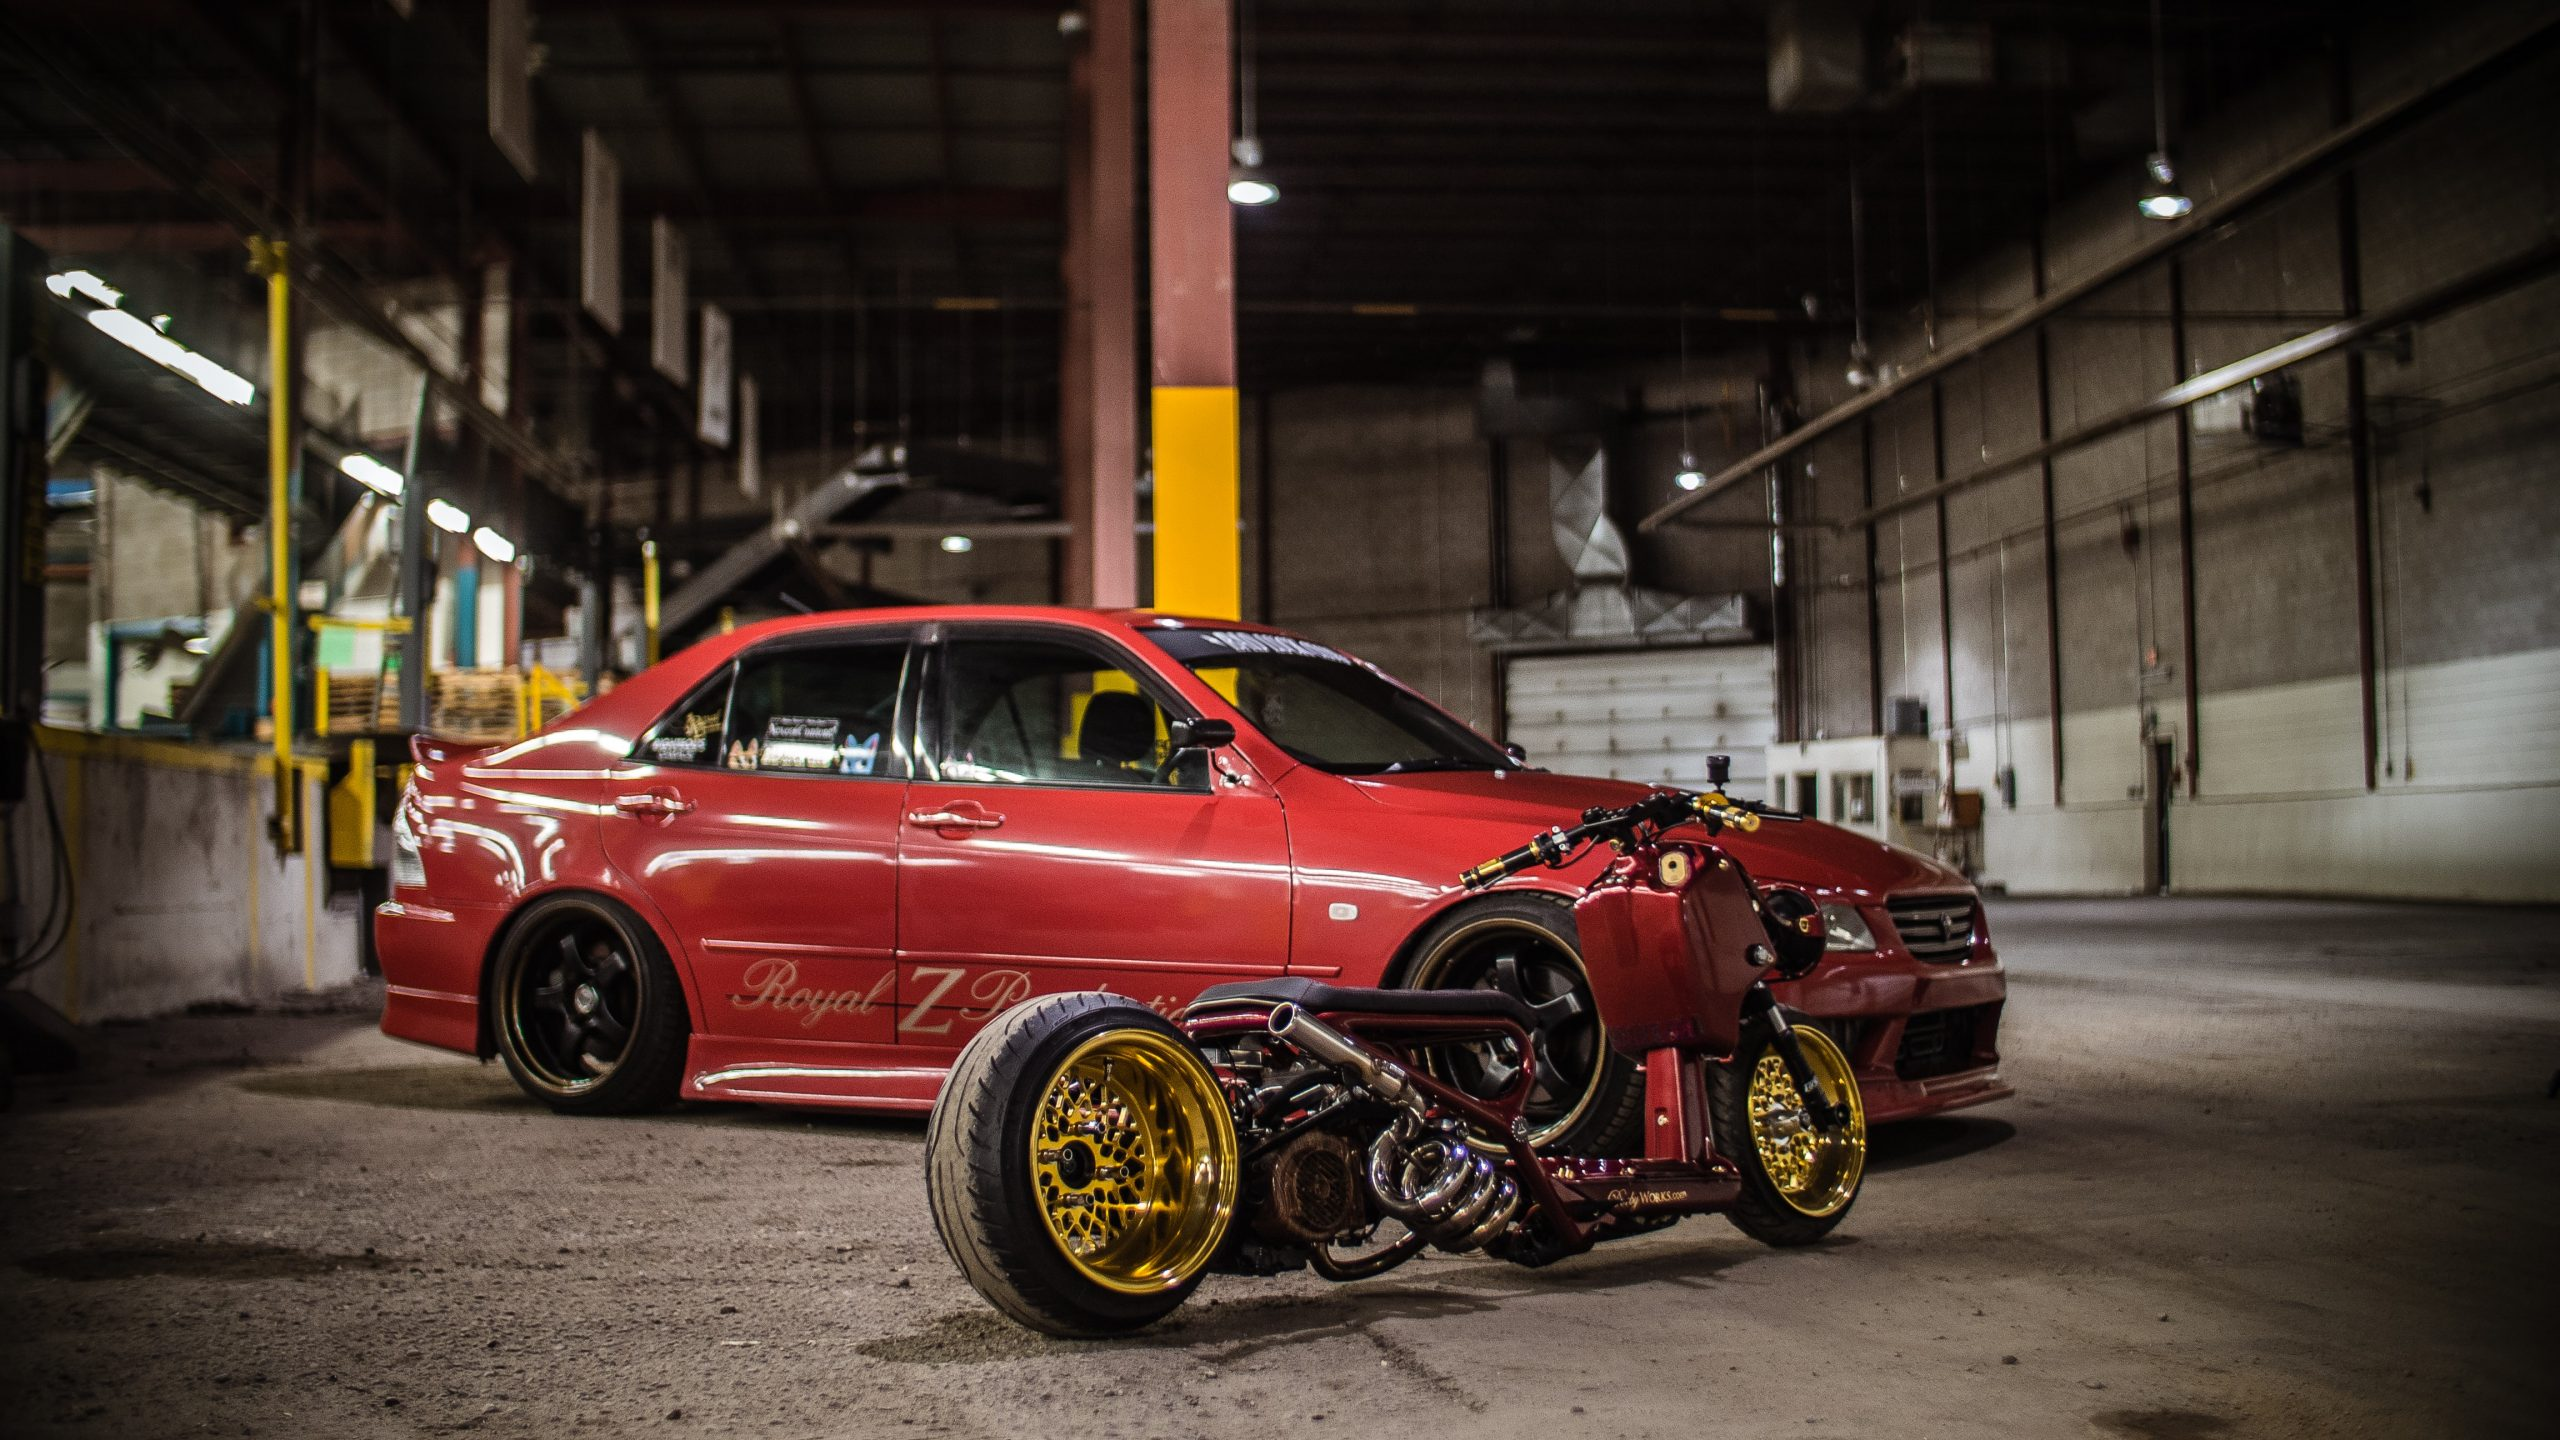 DirectAsia Insurance_A red car and a motorcycle placed together in a warehouse, like in a photoshoot